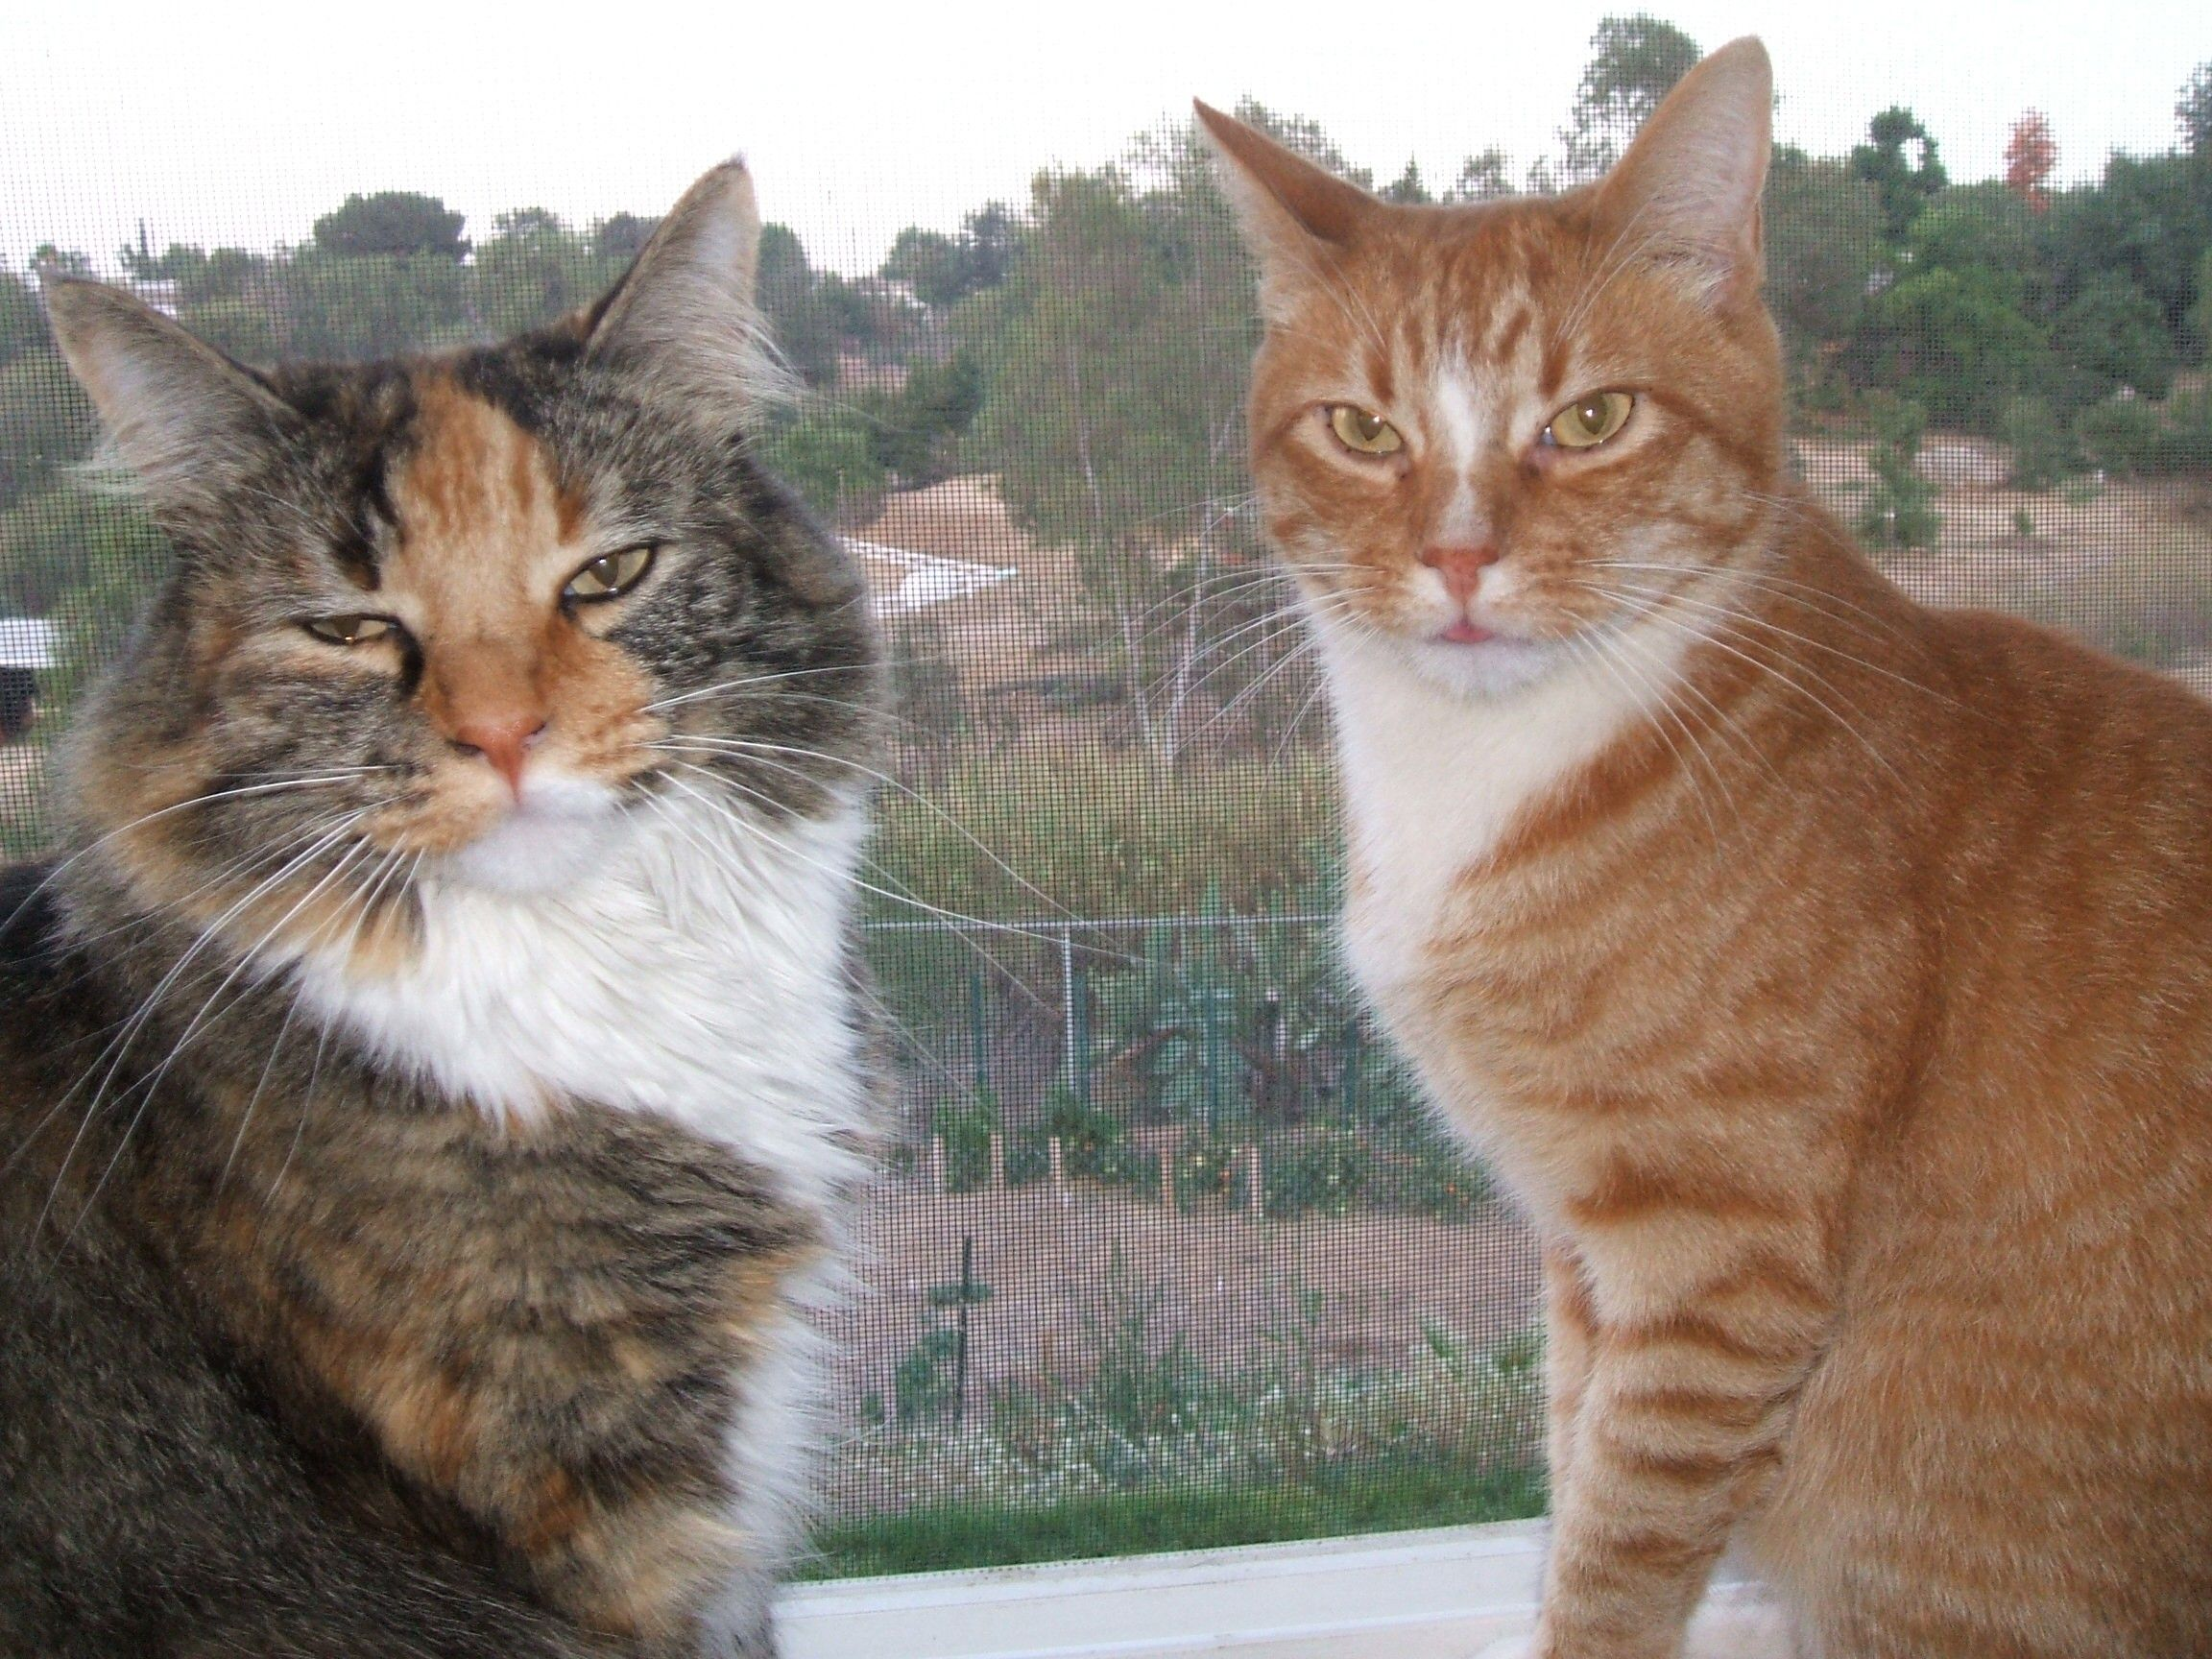 The Rescue Story of Socks and Lucky cats